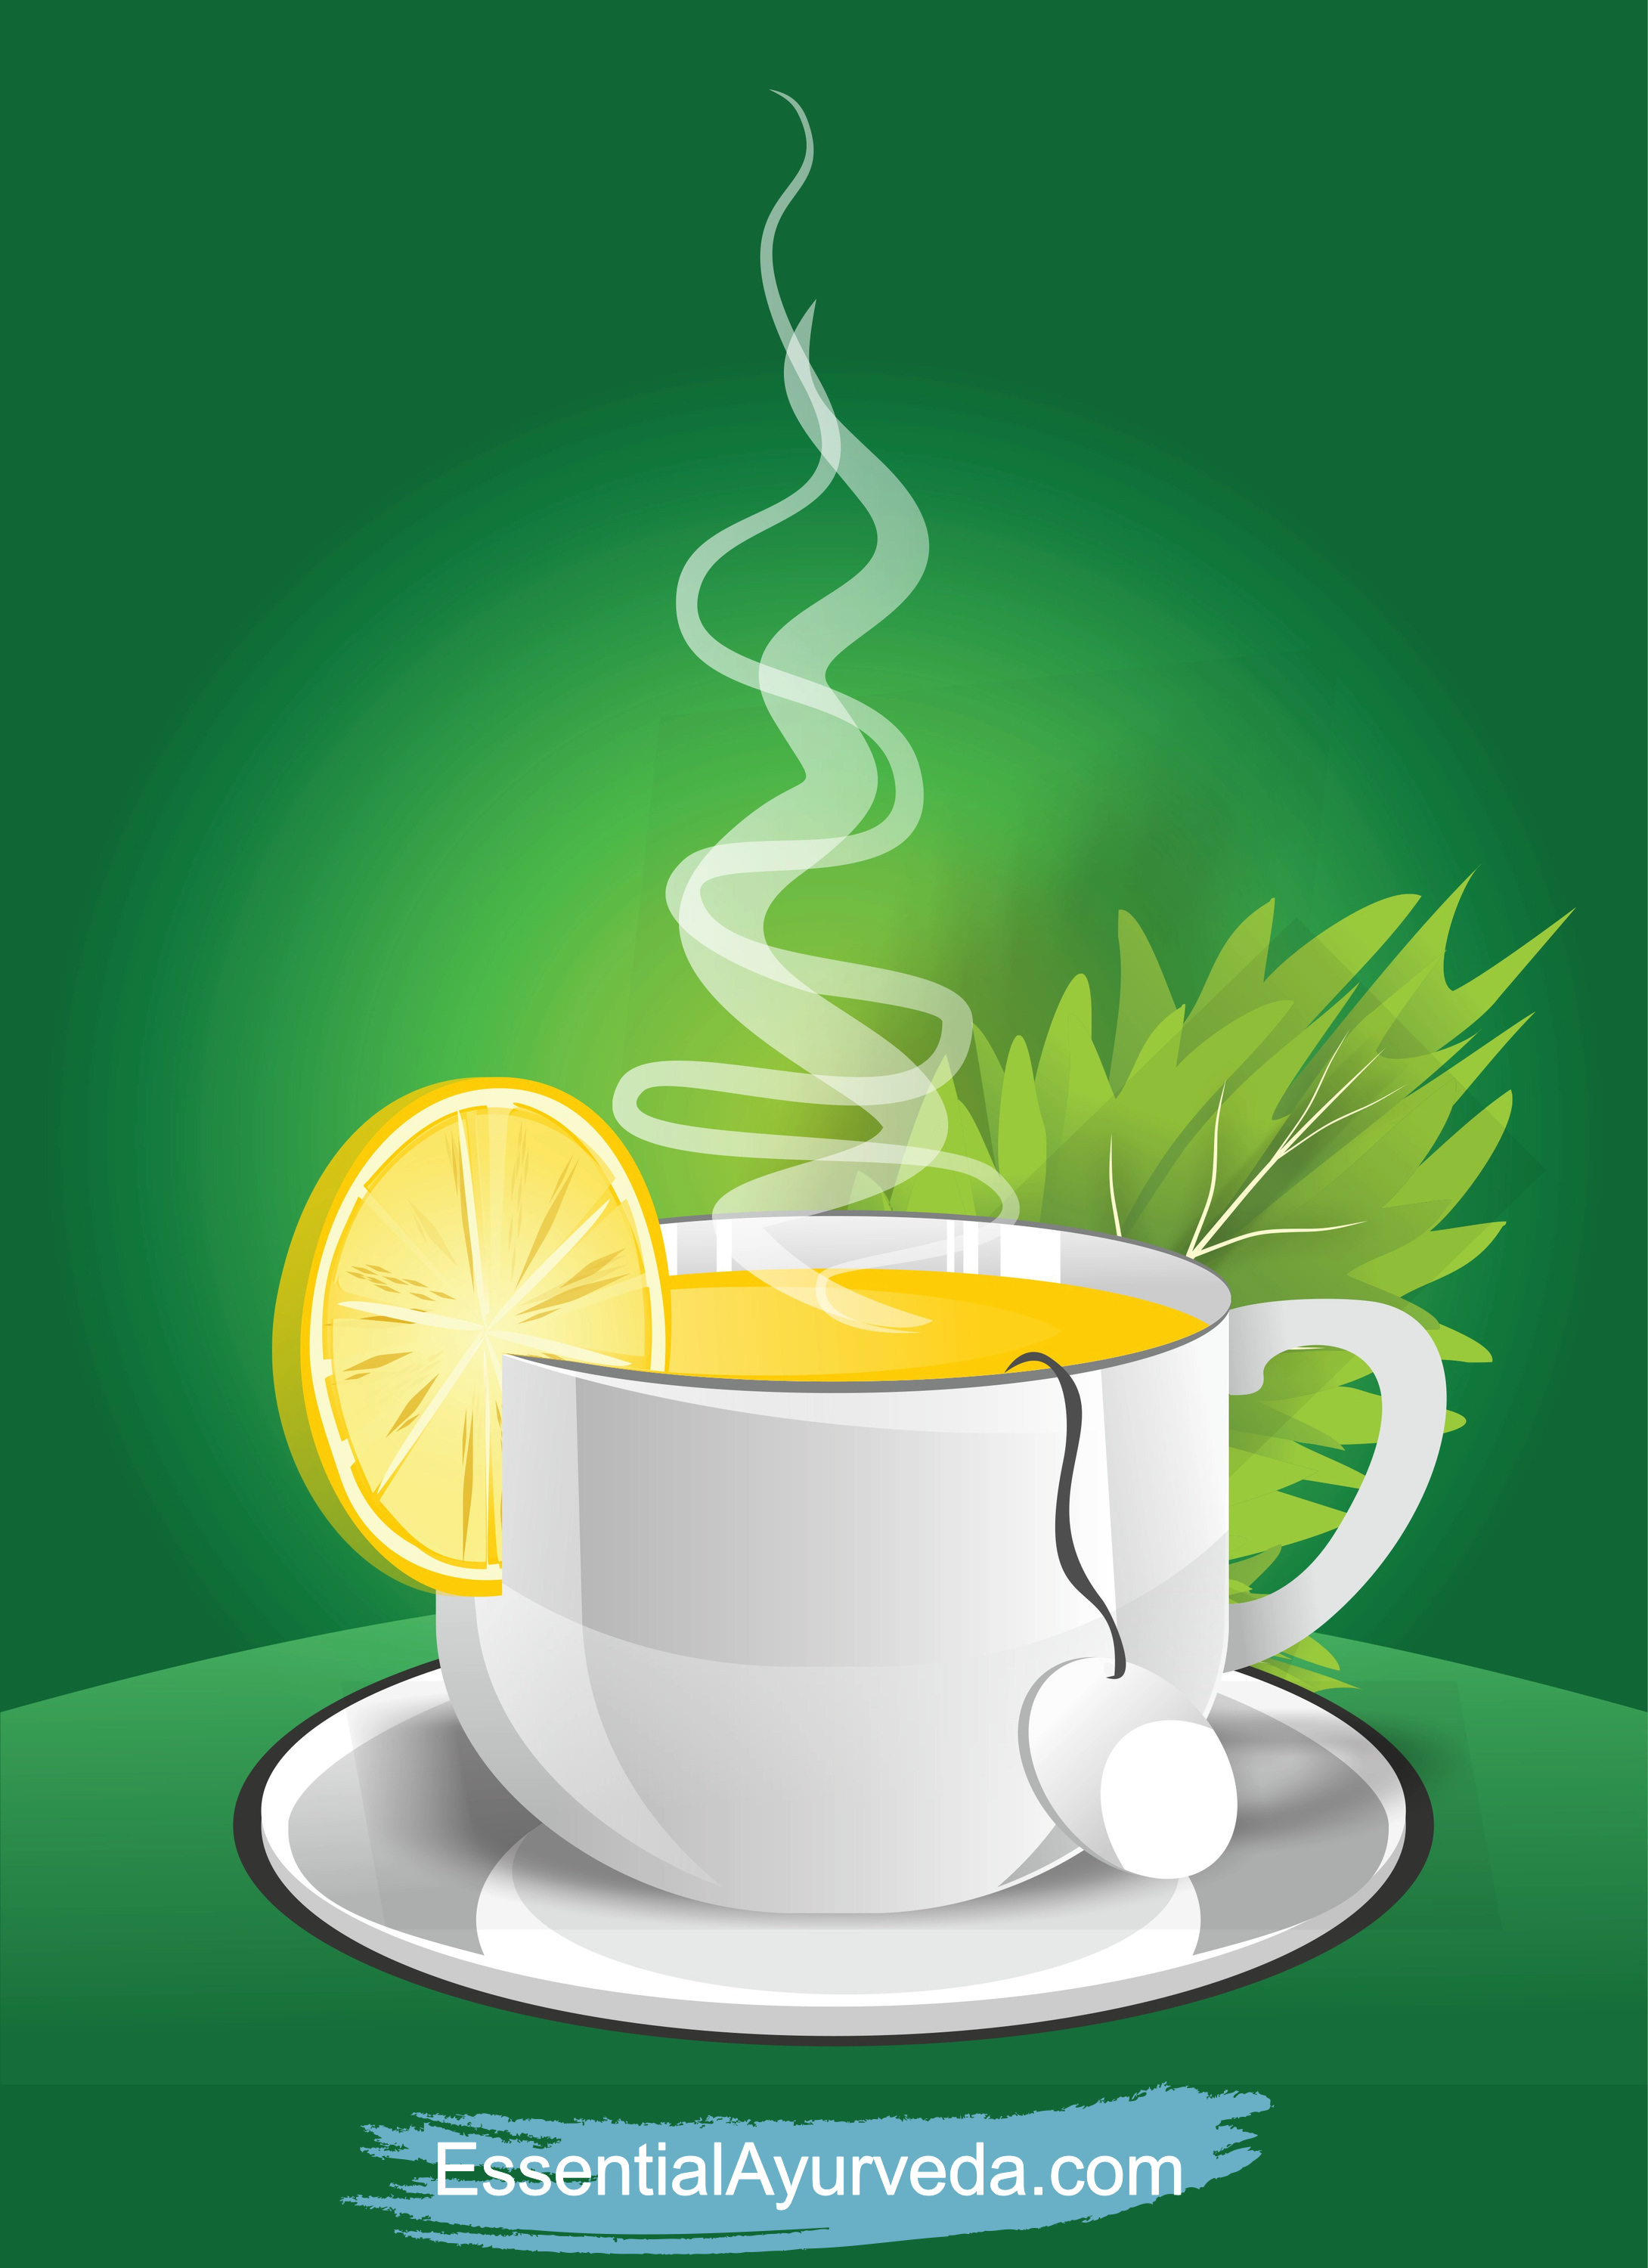 essential-ayurveda-cup-of-tea.jpg